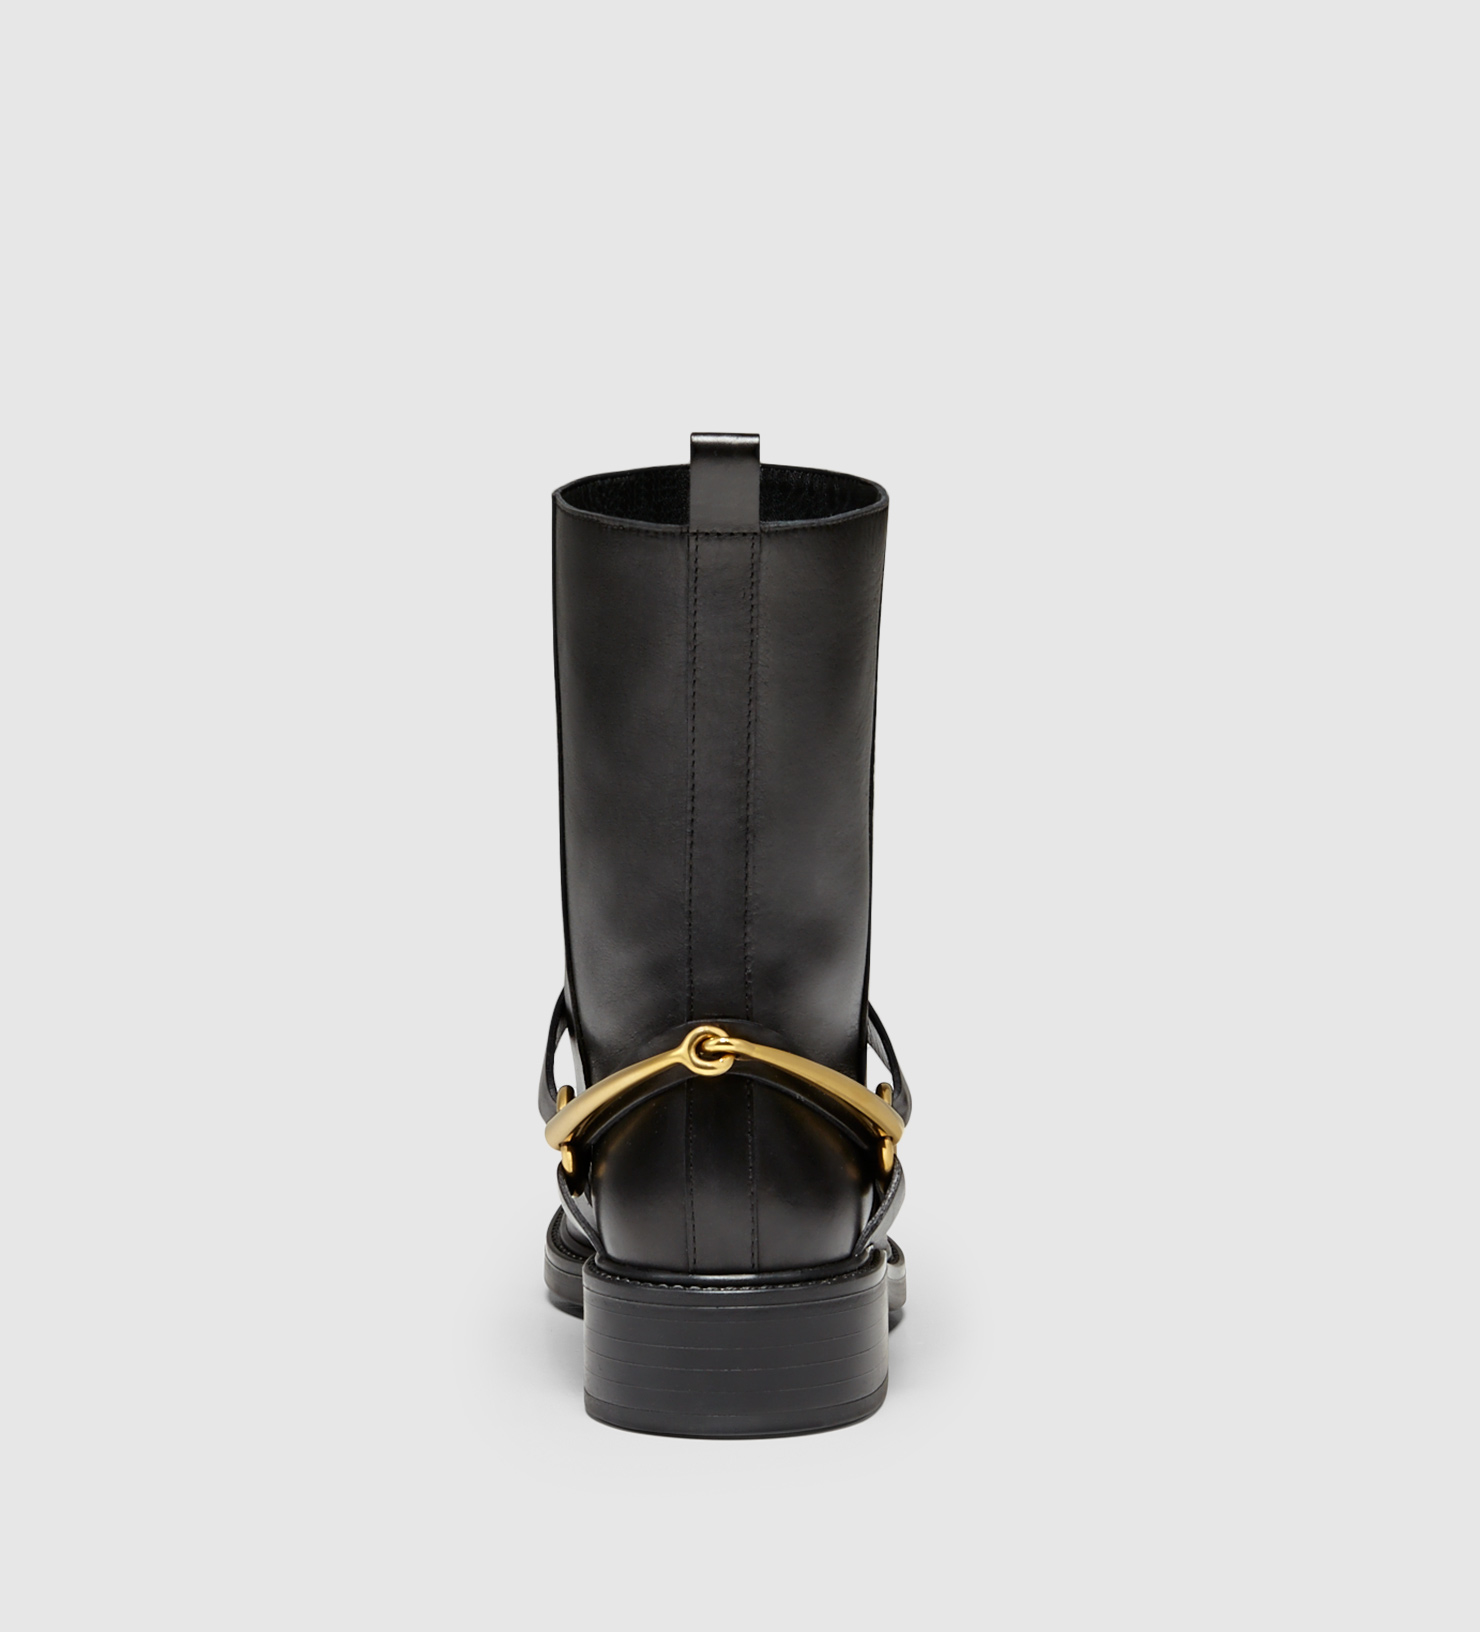 c256dff90 Gucci Tess Leather Horsebit Ankle Boot in Black - Lyst